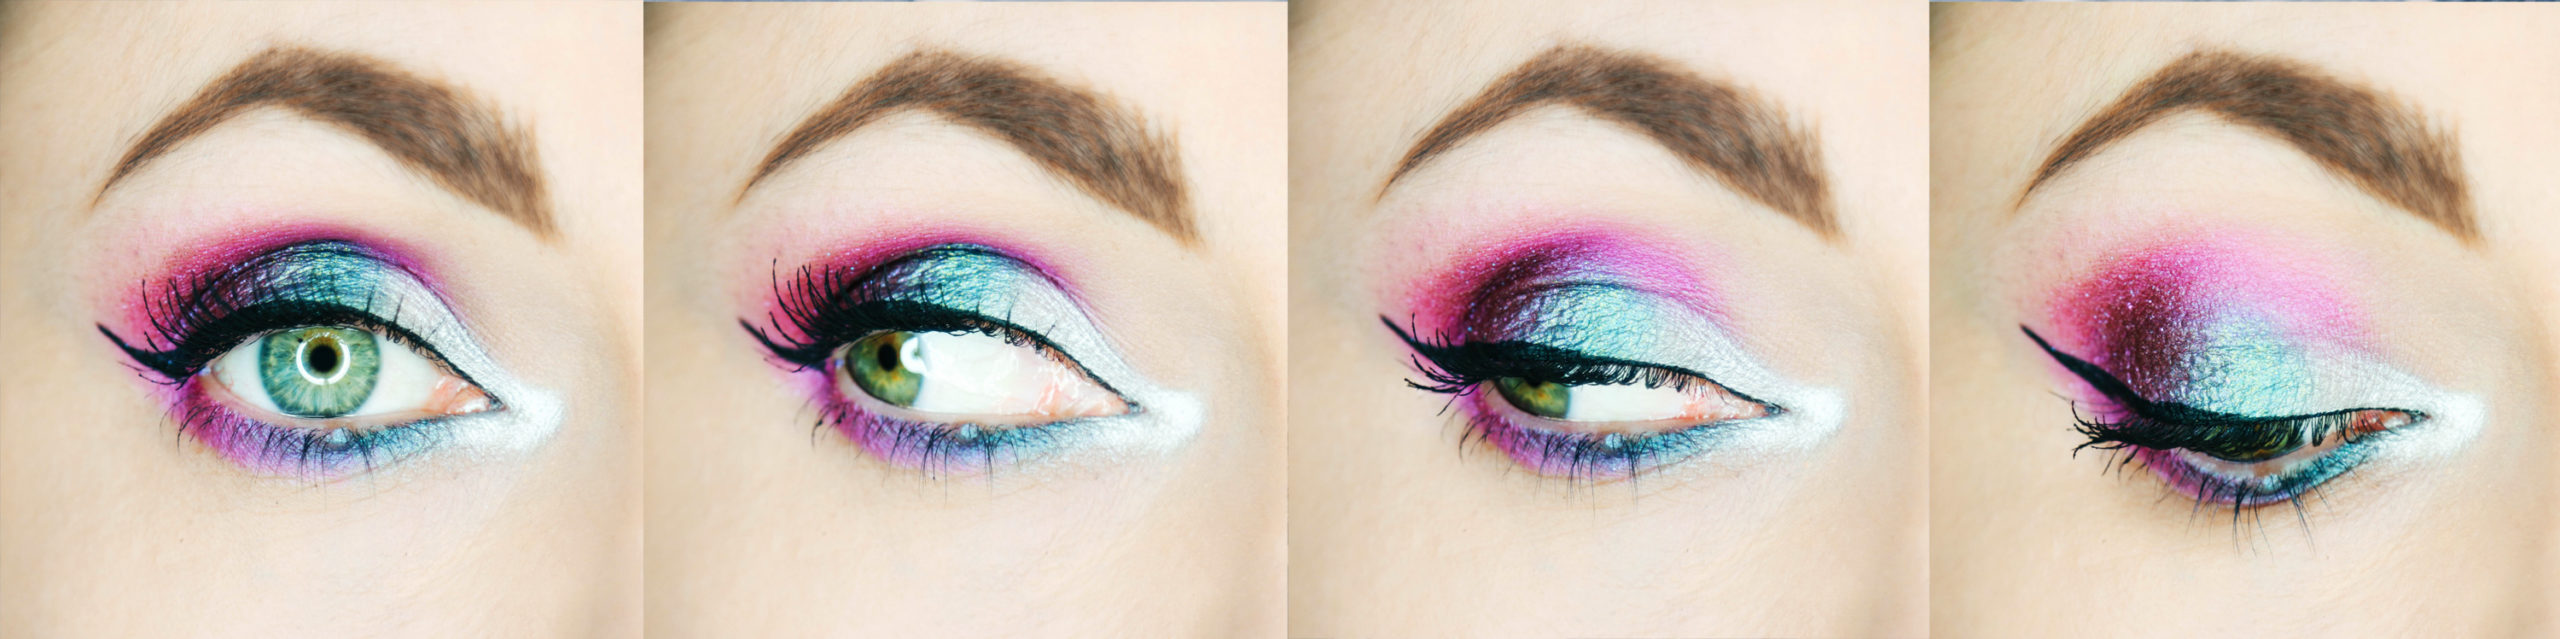 too faced party makeup